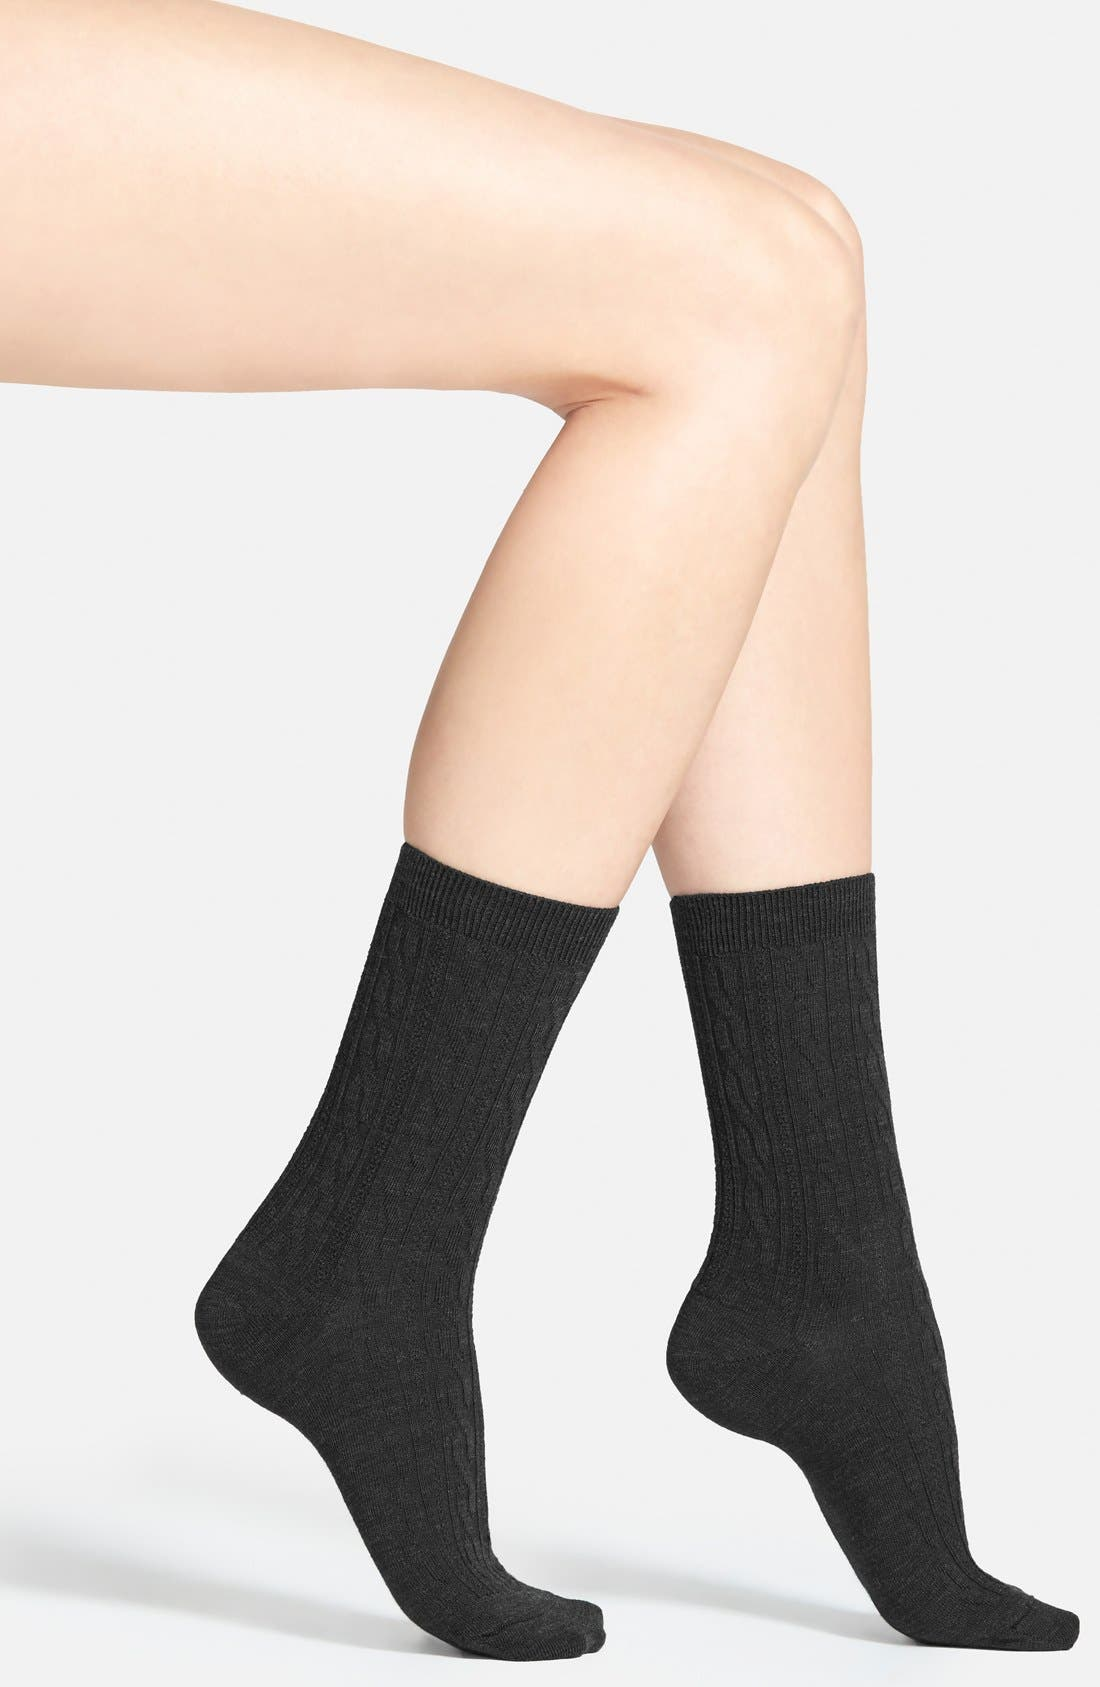 'Cable II' Crew Socks,                         Main,                         color, Black